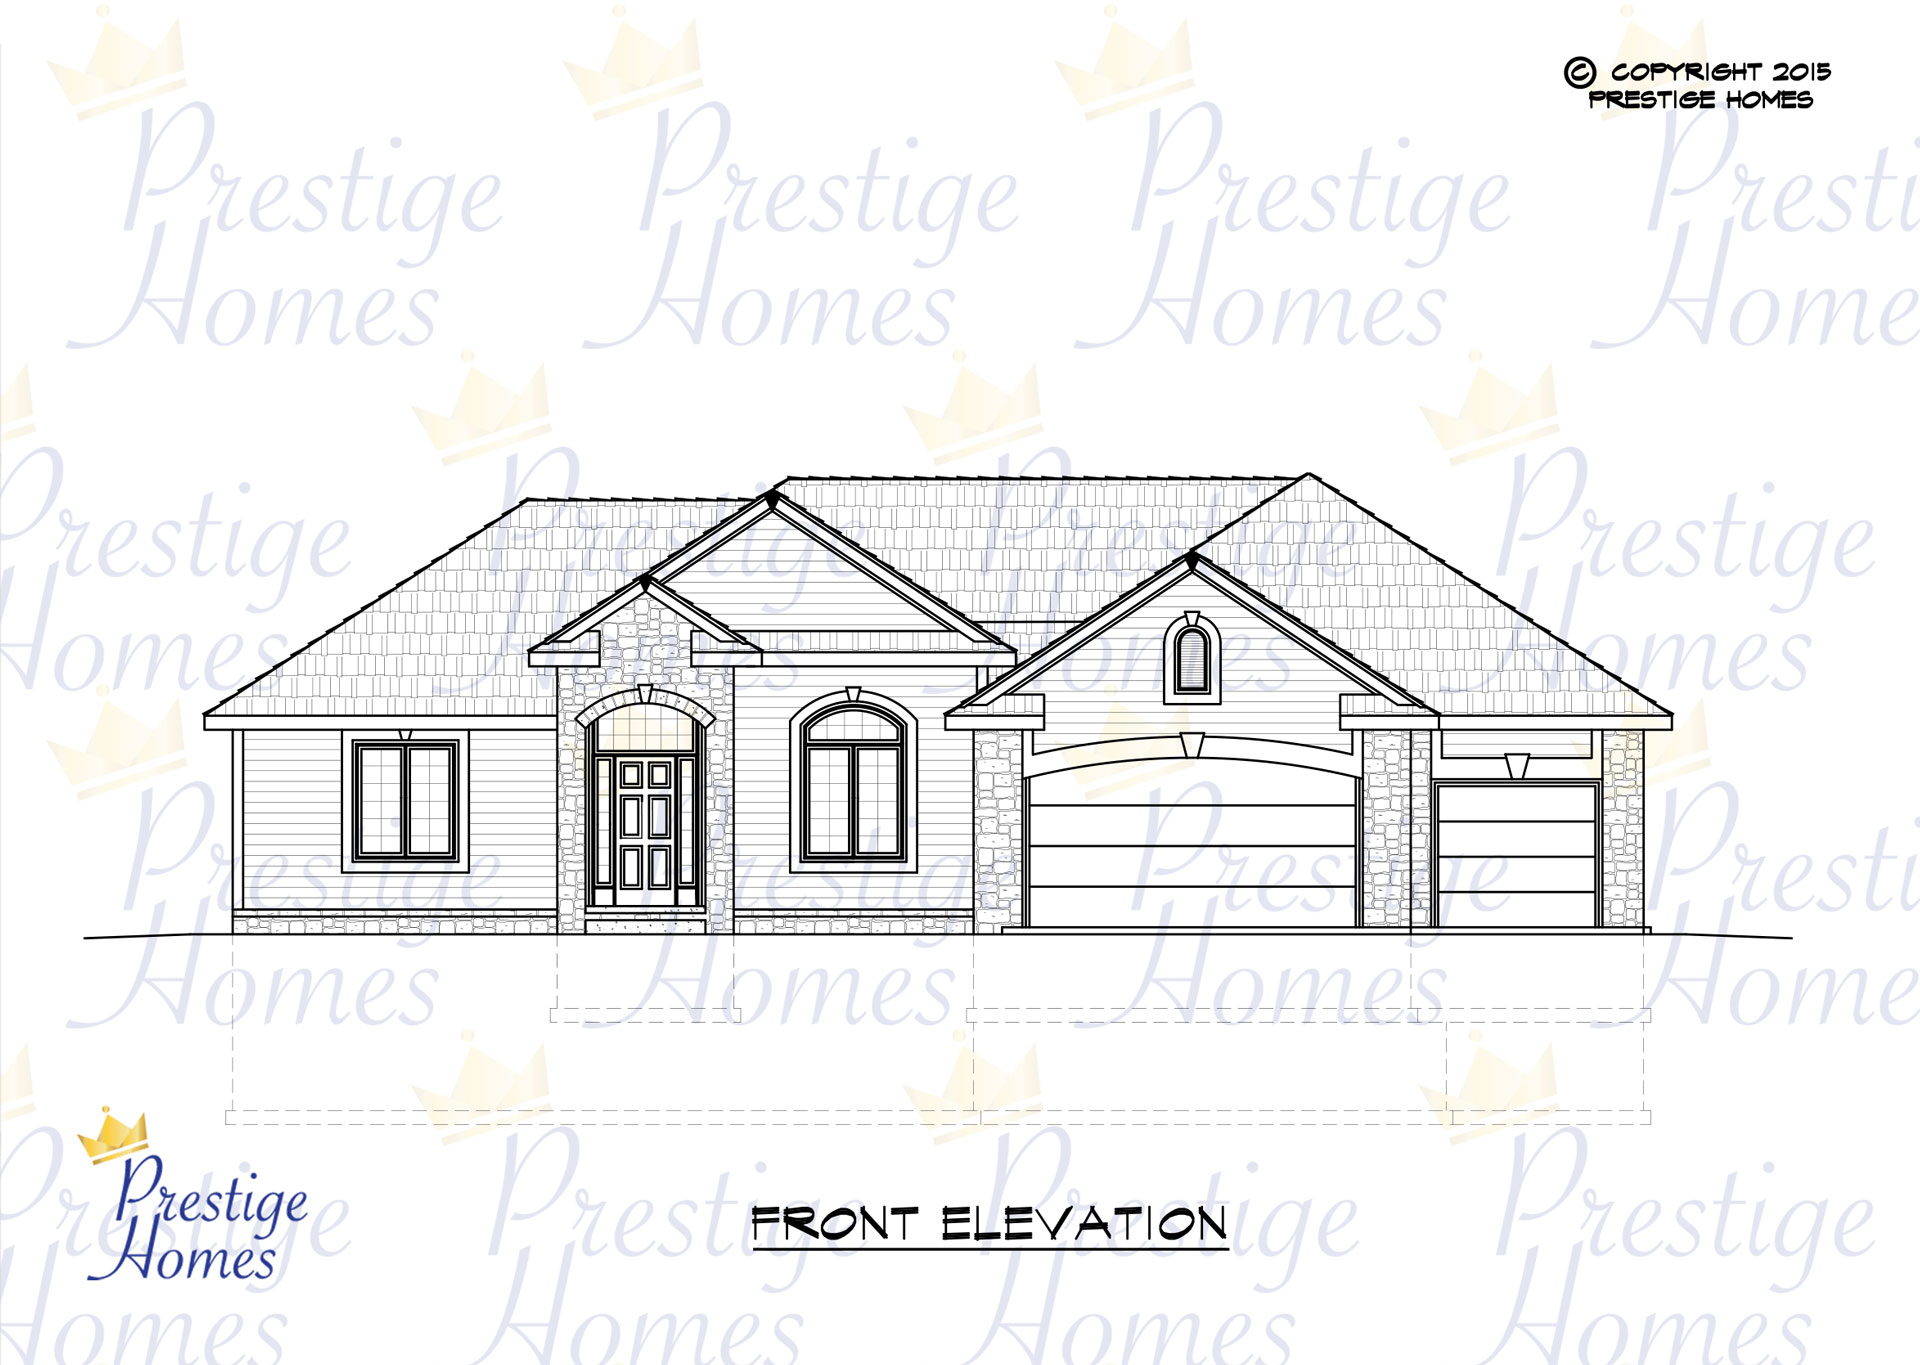 Prestige Homes - Floor Plan - Kelsey 2 Bed - Front